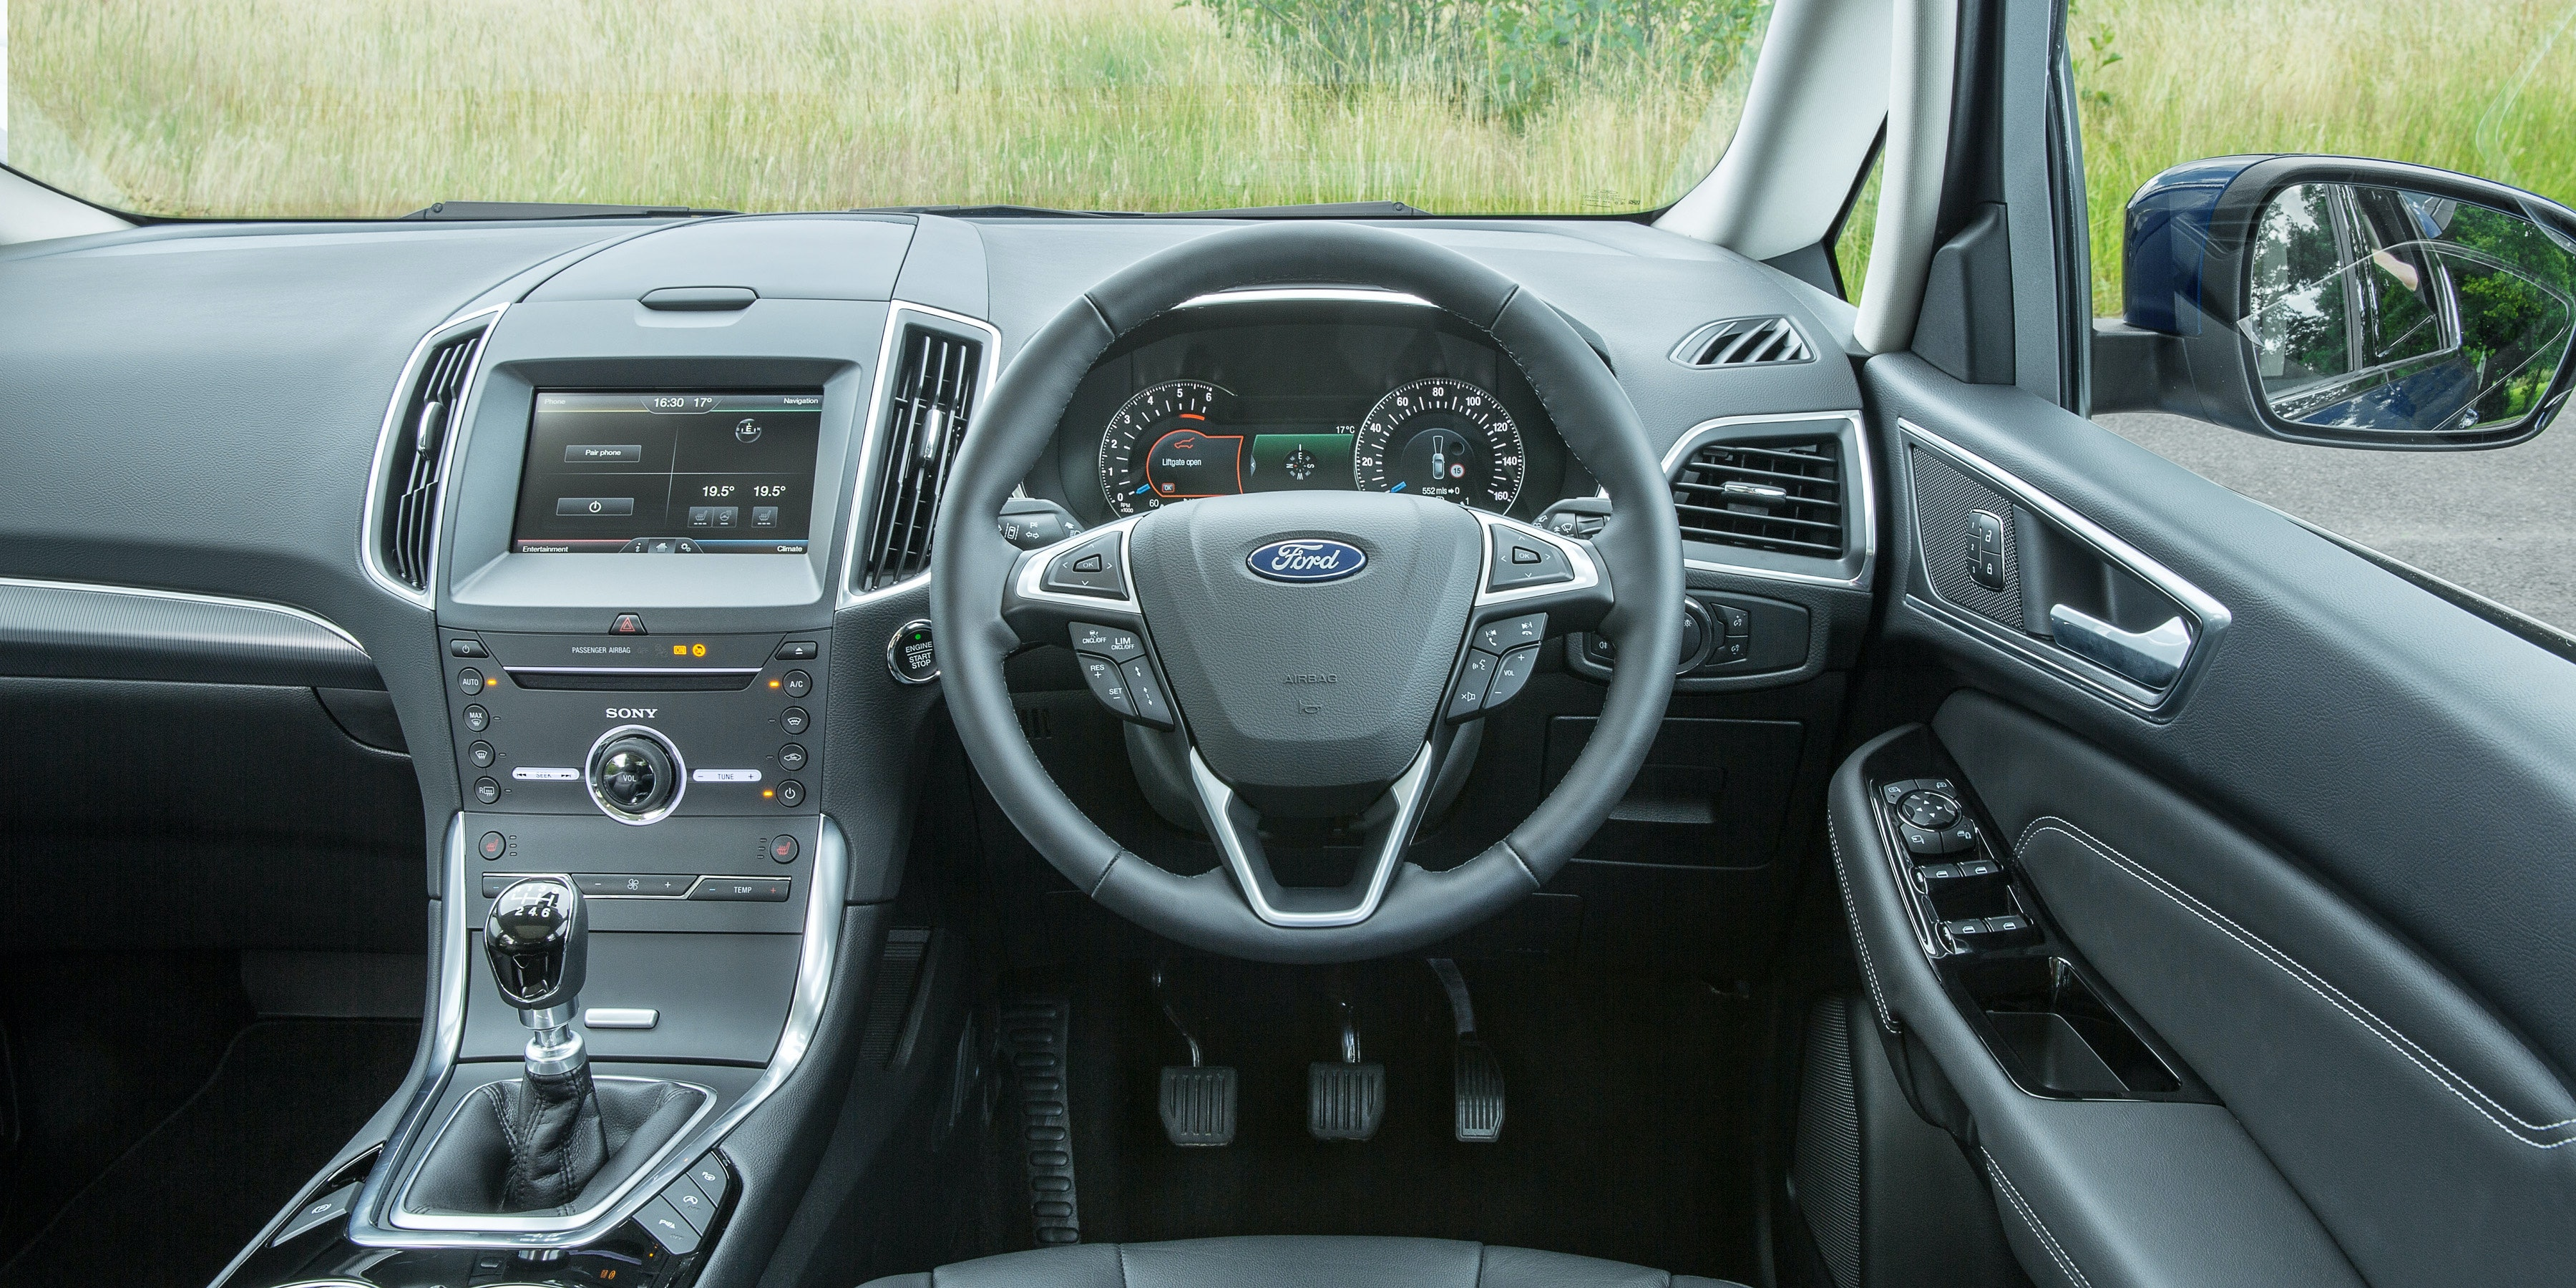 The S-Max's dashboard is very similar to the Mondeo's